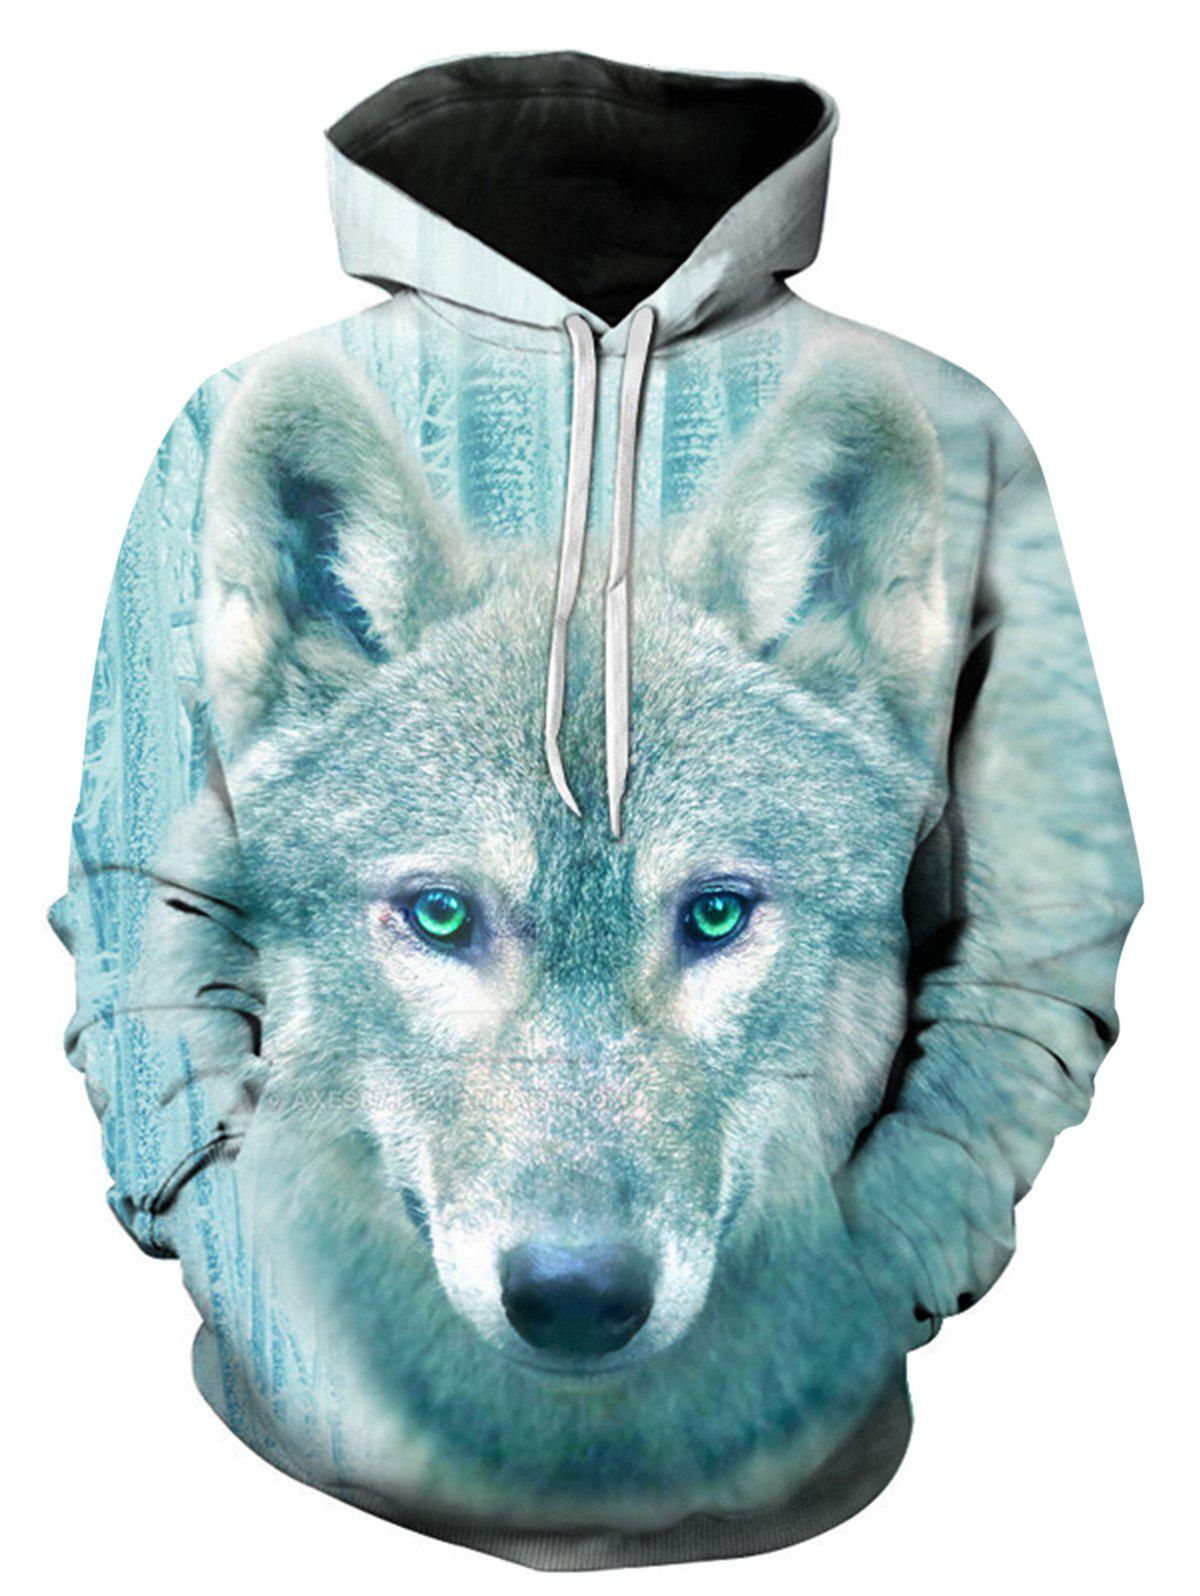 Wolf 3D Print Pullover HoodieMEN<br><br>Size: XL; Color: COLORMIX; Material: Cotton,Polyester; Clothes Type: Hoodie; Shirt Length: Regular; Sleeve Length: Full; Style: Fashion; Patterns: 3D,Animal; Thickness: Regular; Occasion: Casual ,Daily Use,Going Out; Weight: 0.4800kg; Package Contents: 1 x Hoodie;